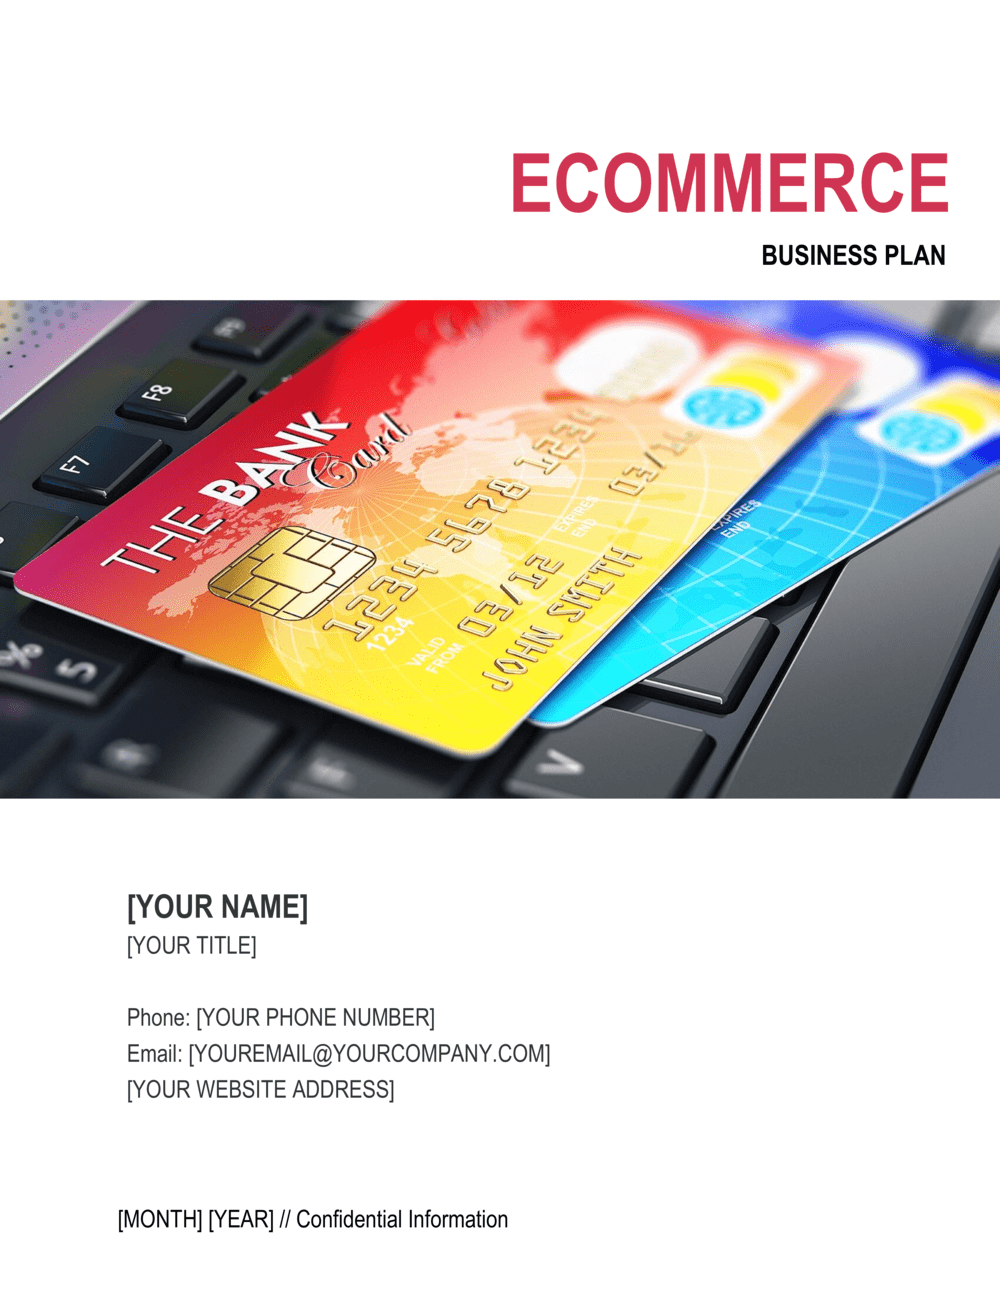 Business-in-a-Box's eCommerce Business Plan Template